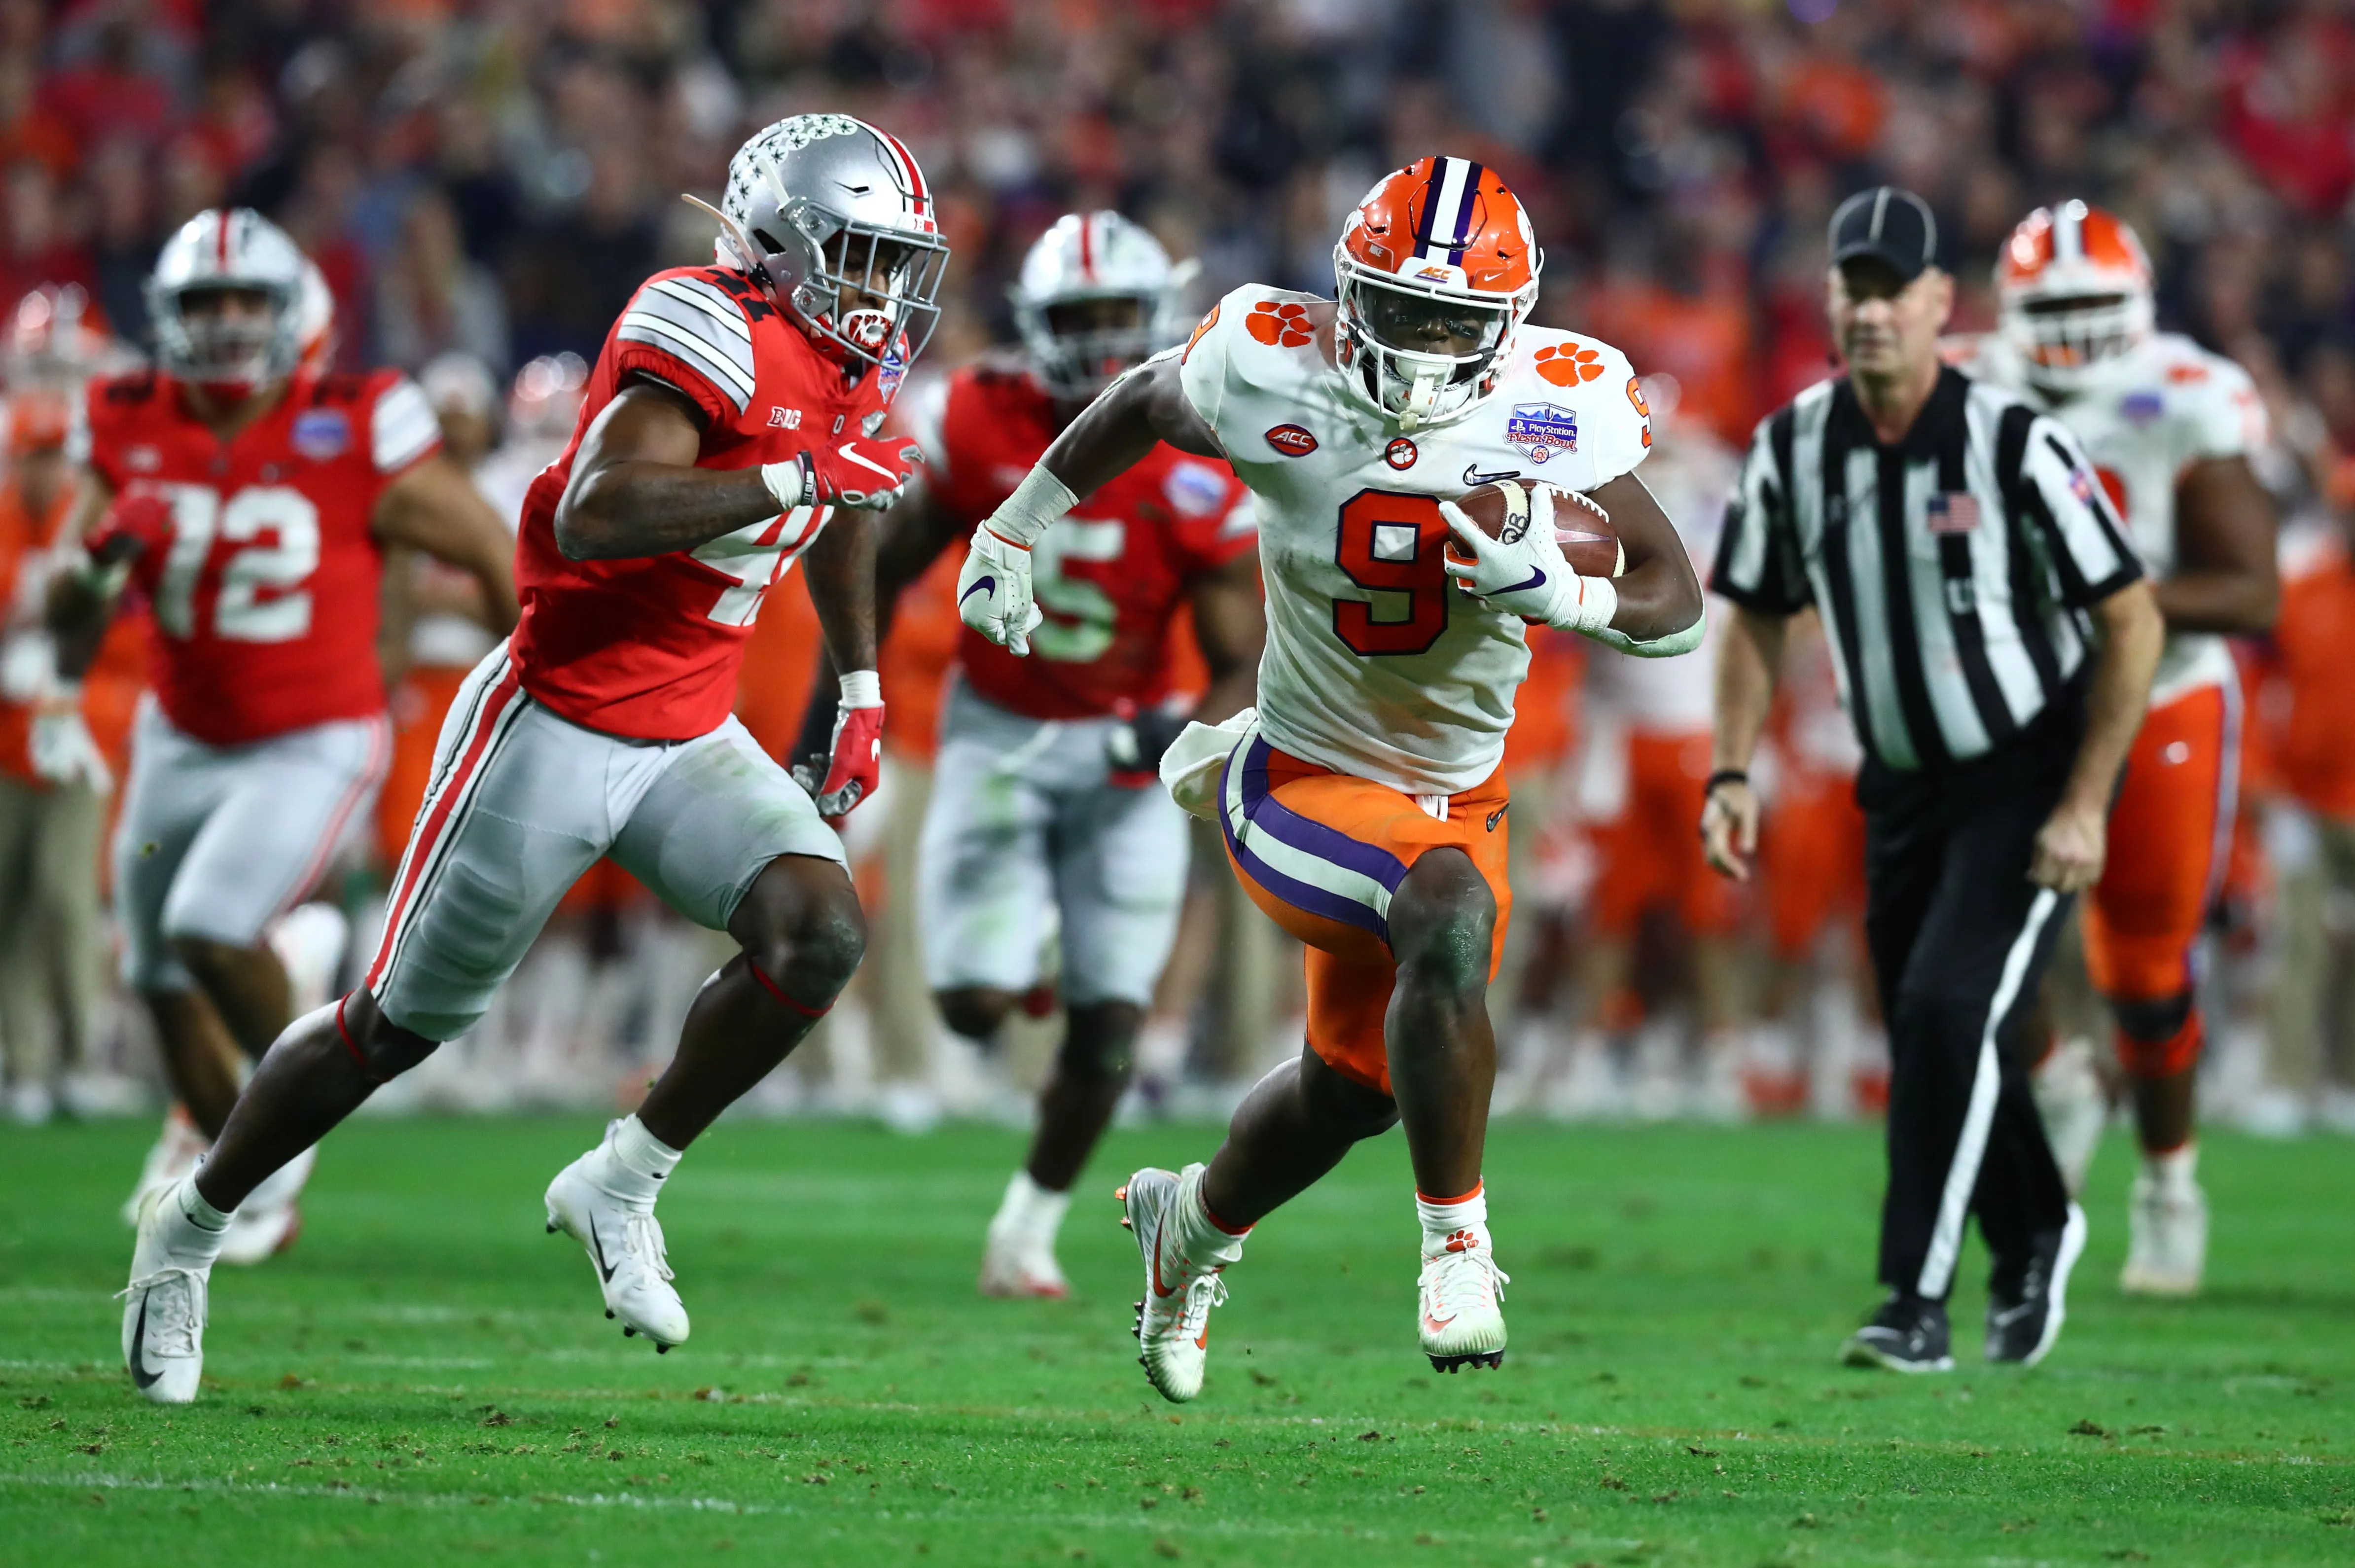 Lsu Clemson Four Keys To Victory In The National